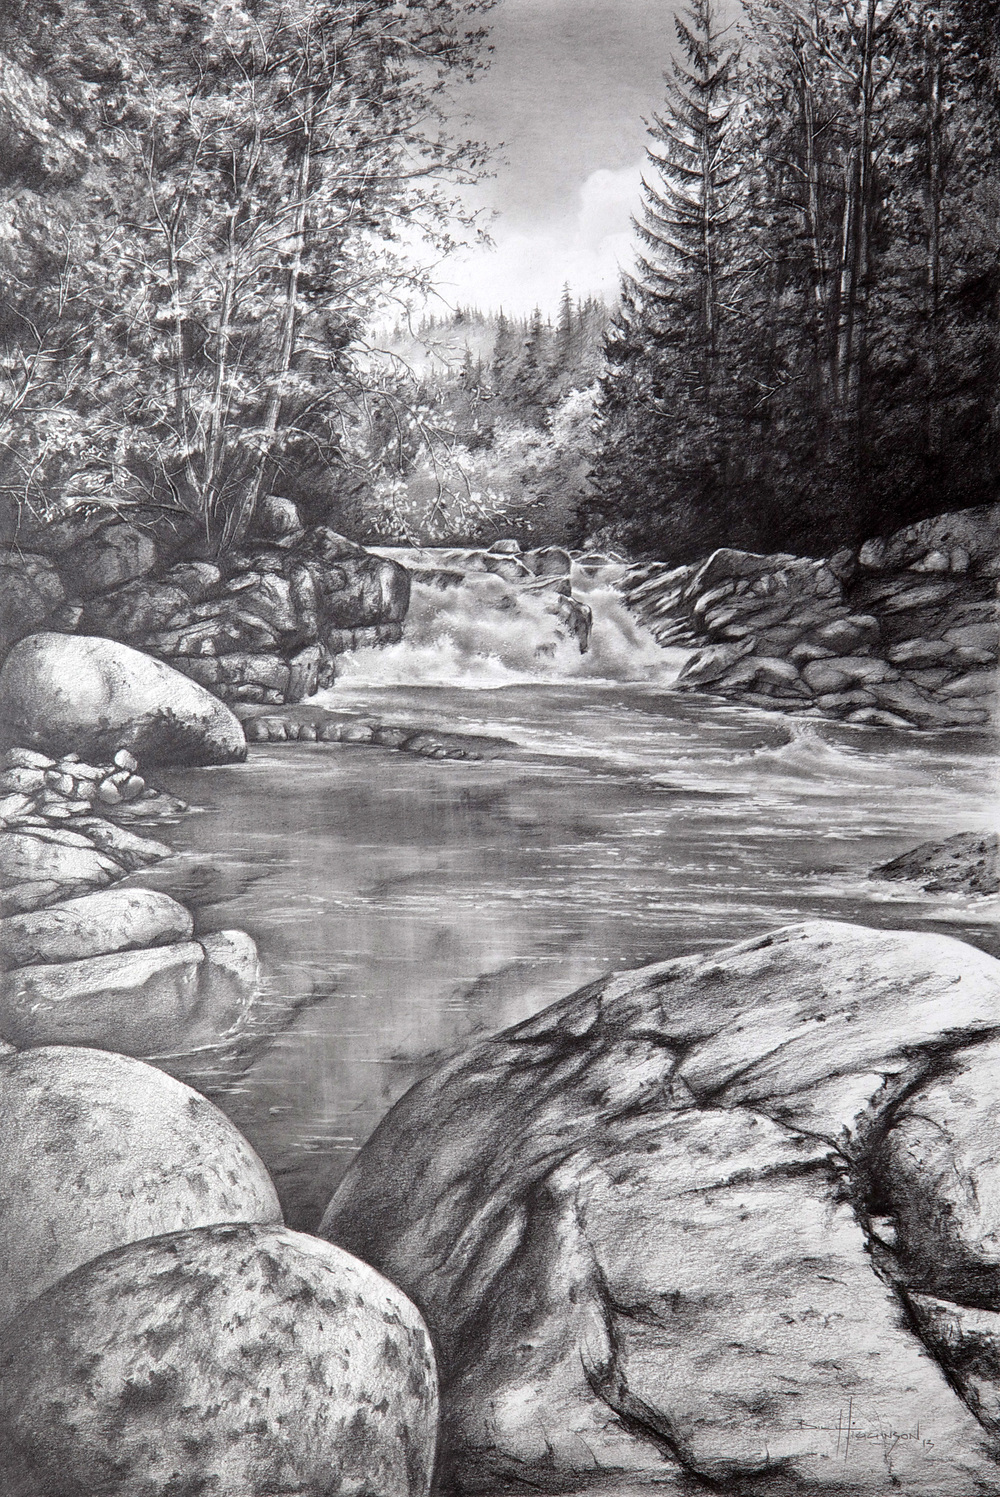 bill_higginson-lynn valley-graphite-drawing-realism-black-and-white